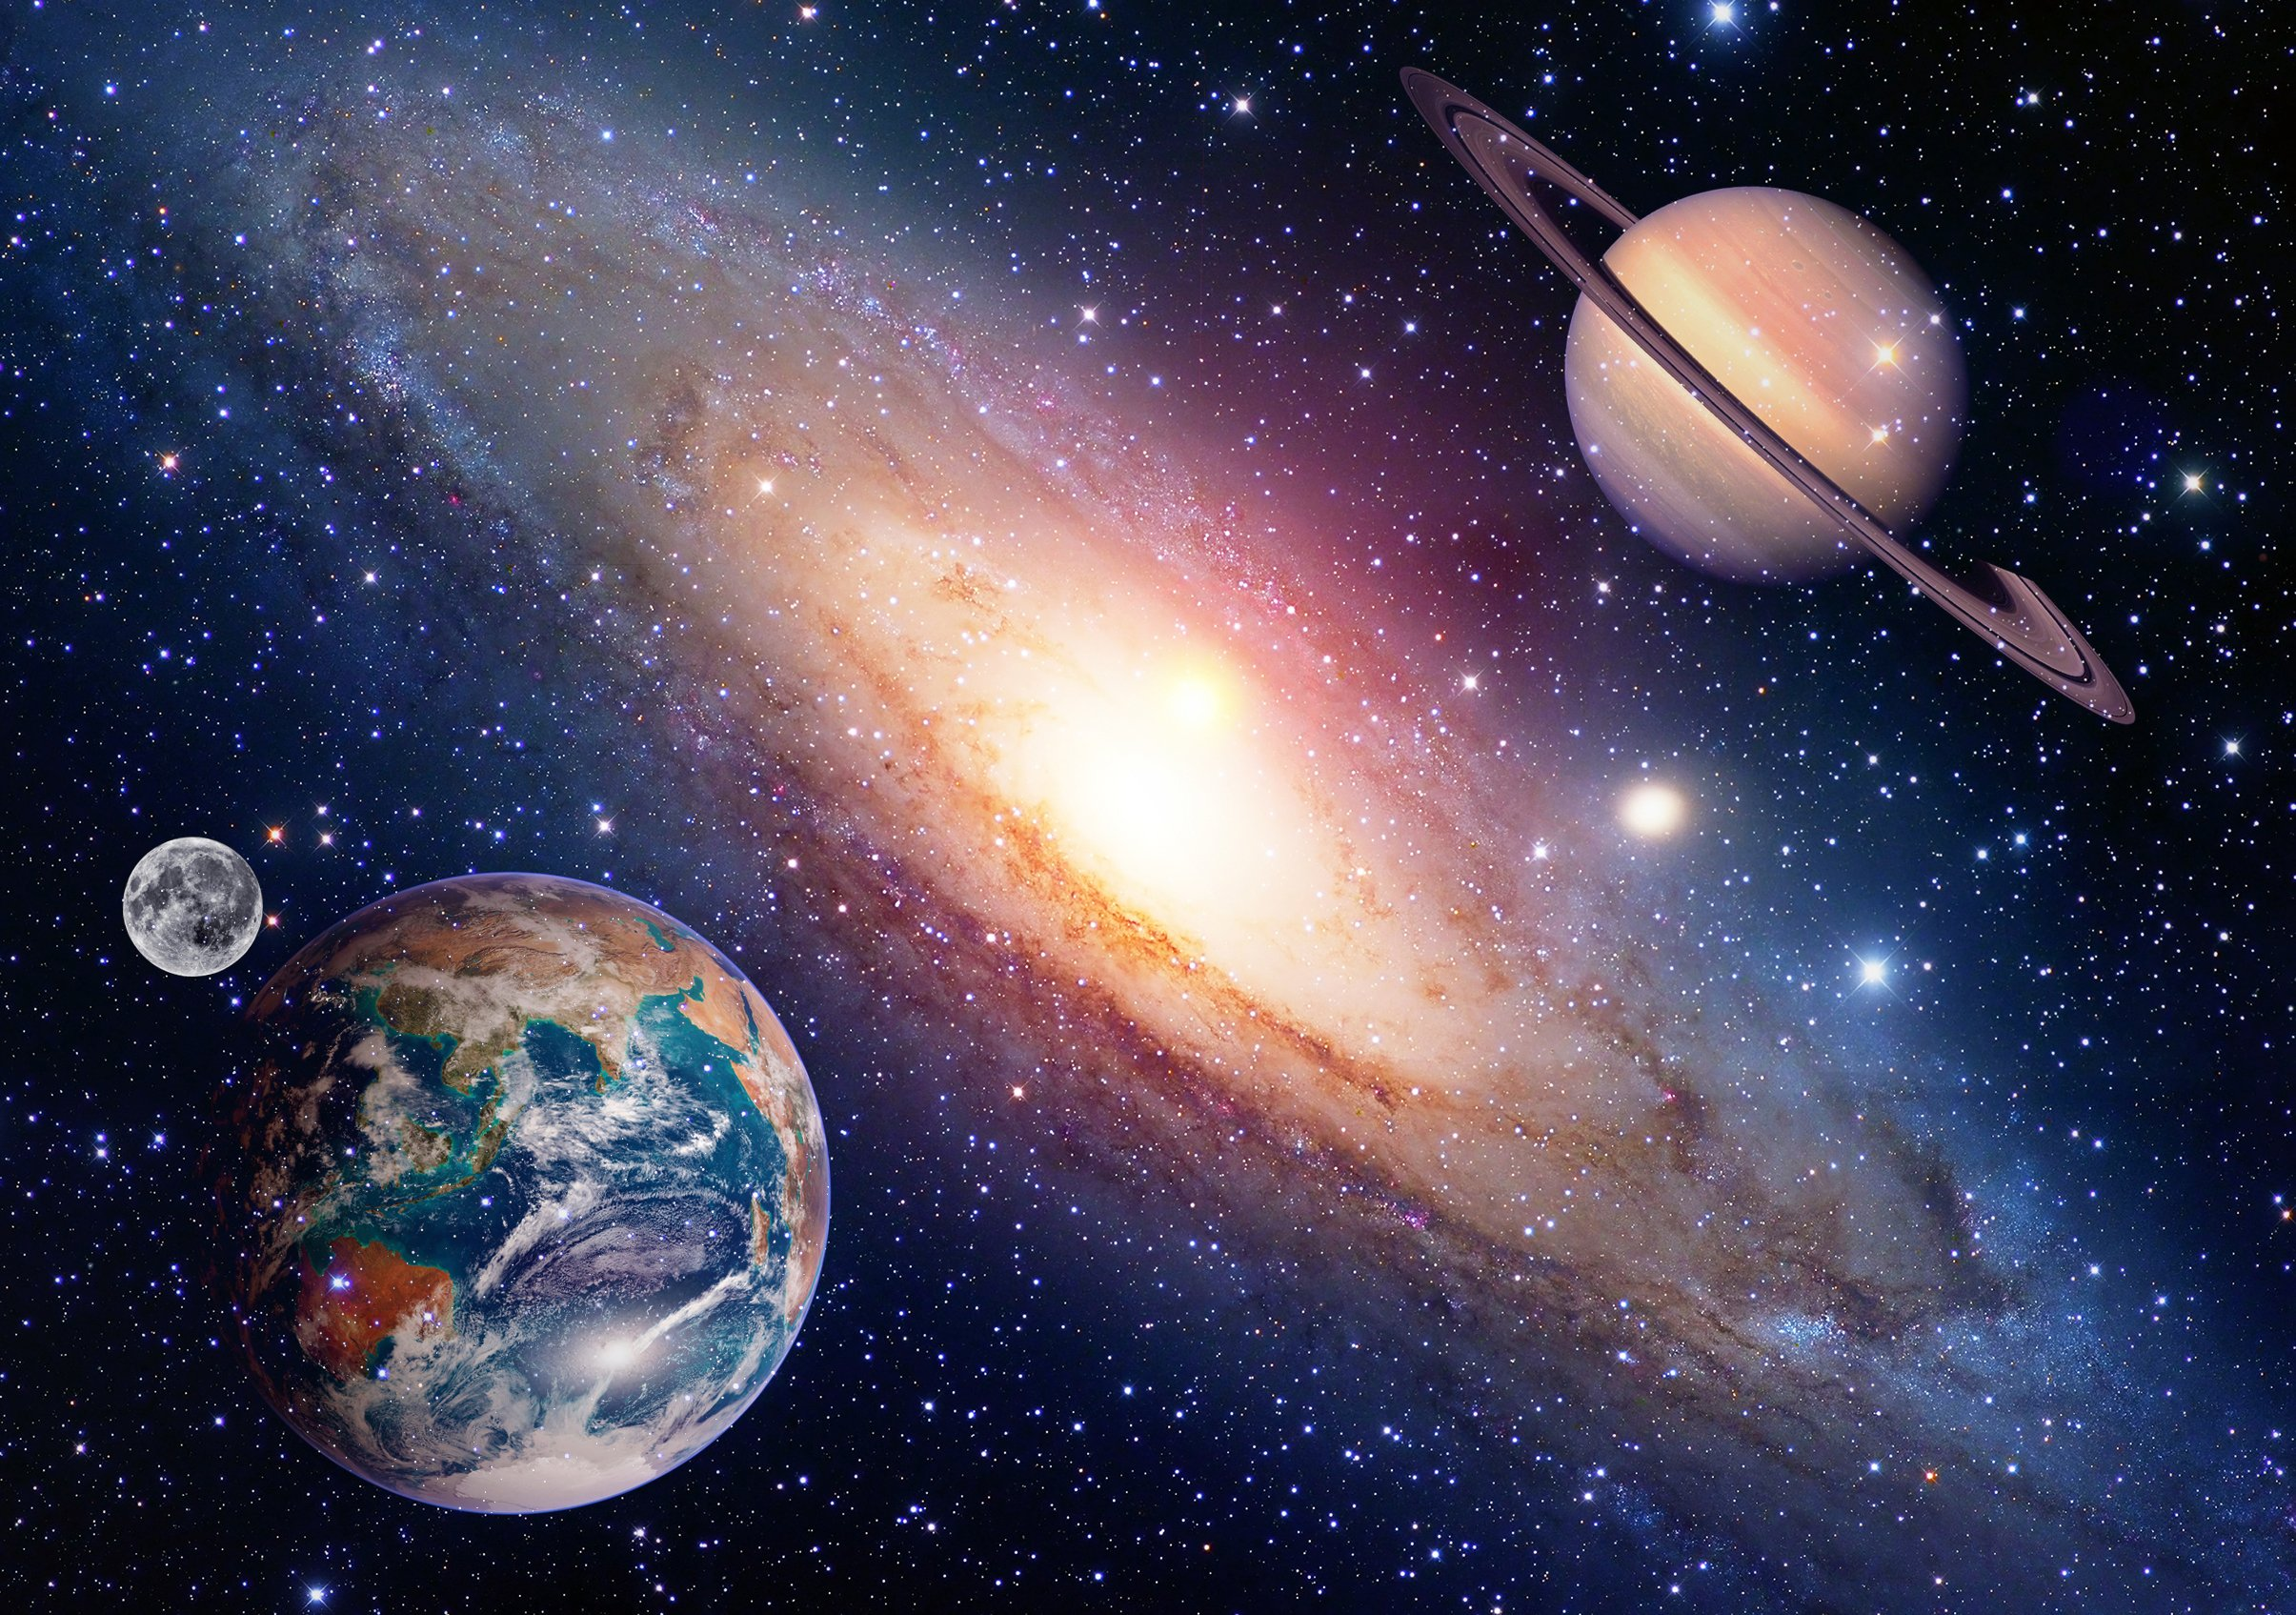 Represenation of the planets Earth and Saturn close to each other with the moon | Photo: Shutterstock